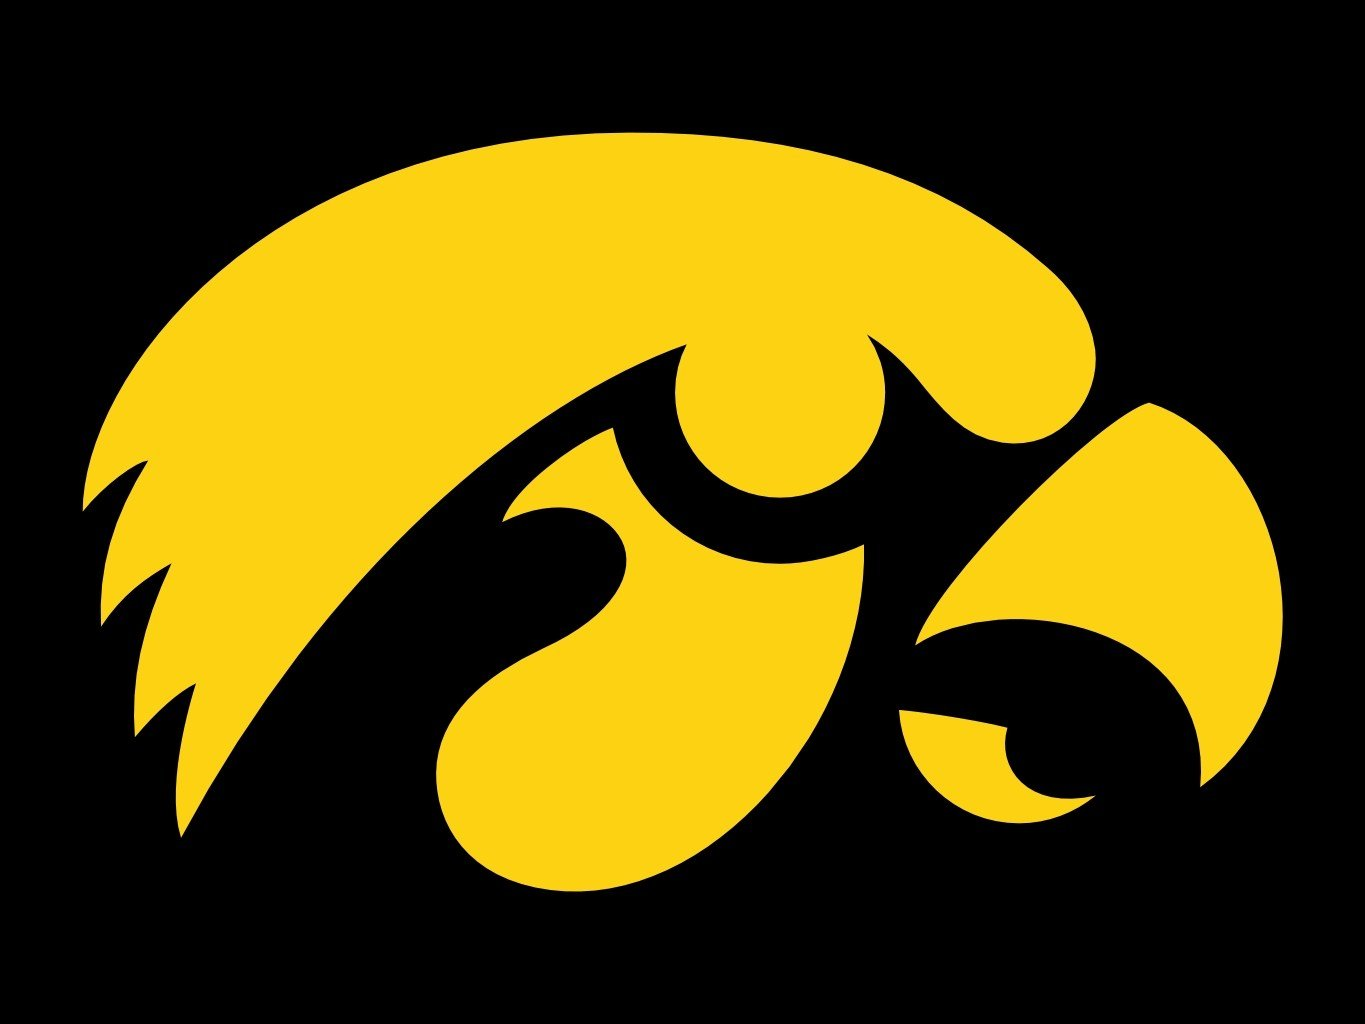 Iowa faces IL  in college basketball